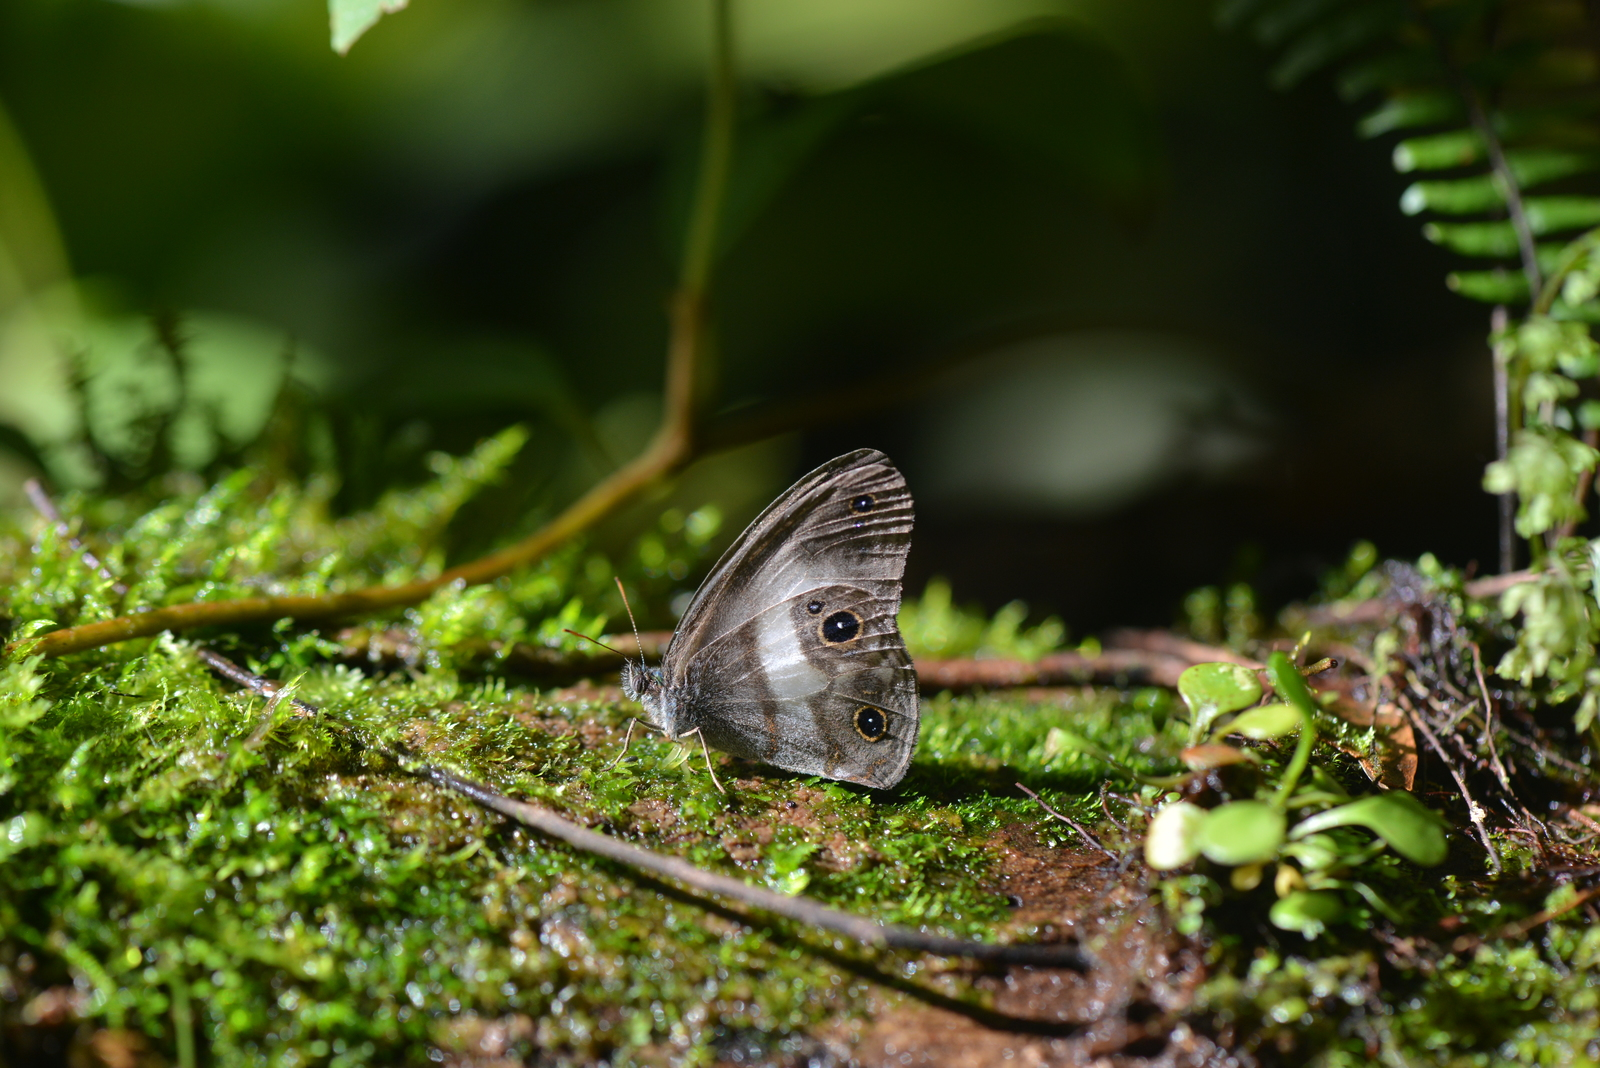 This satyr butterfly (Pseudeuptychia sp. nov.) lives high in the canopy and comes to the understory to feed. Image © Fernando Guerra.